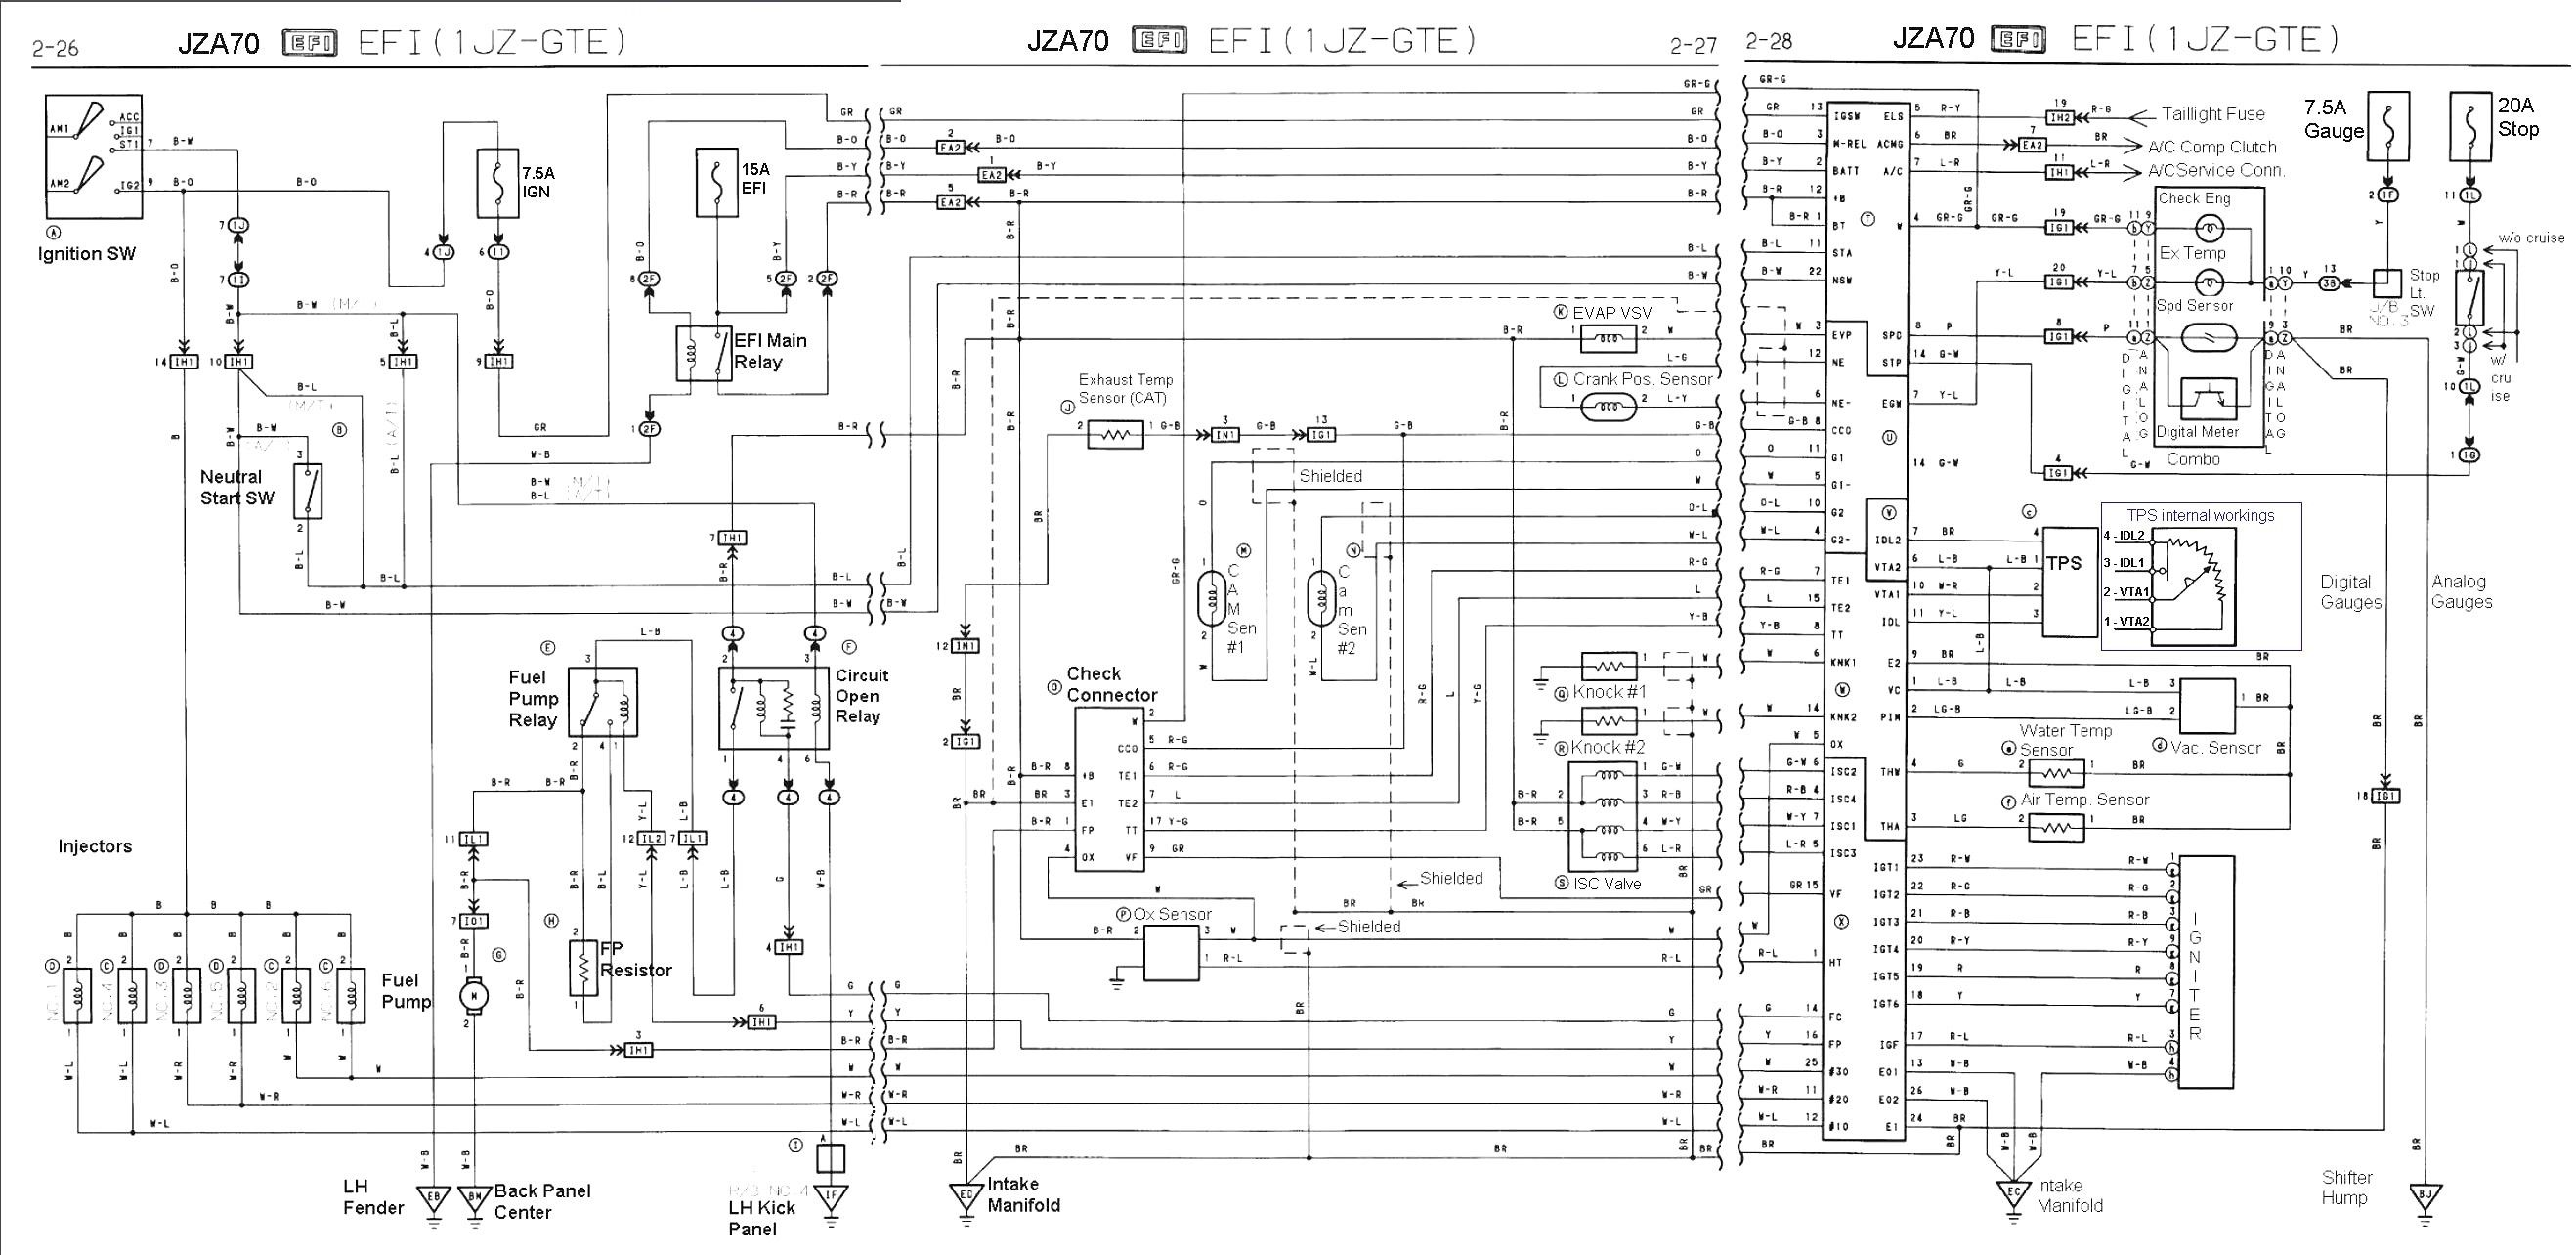 New Wiring Diagram for Bmw E46 #diagram #diagramtemplate #